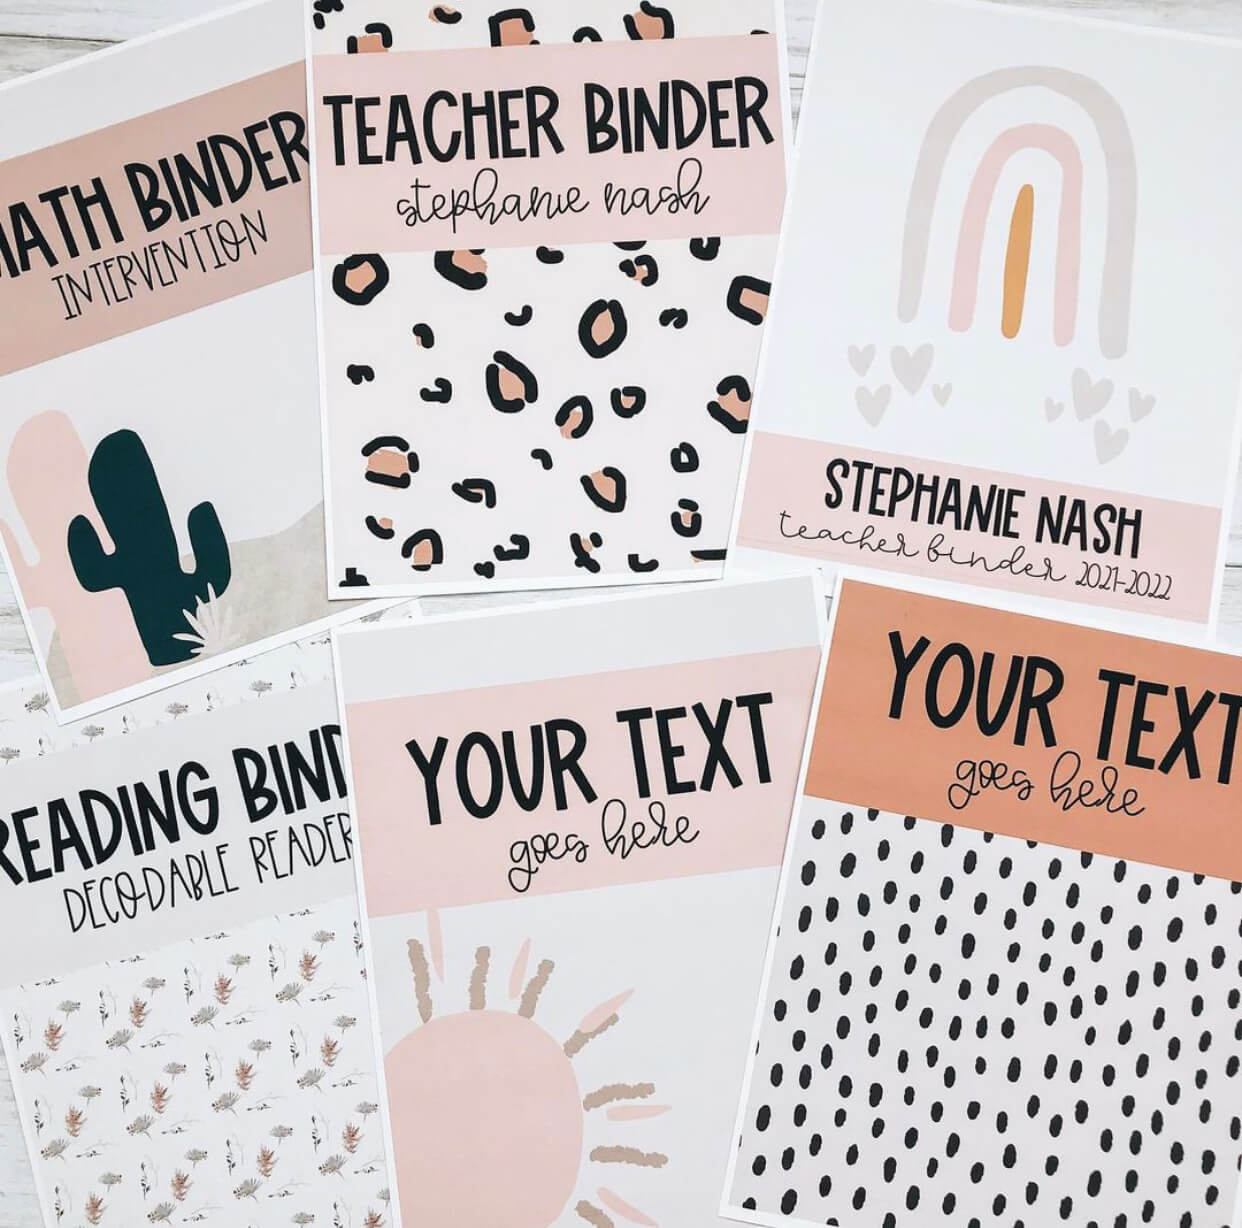 Binder labels are a great classroom organization idea to keep your materials in order.